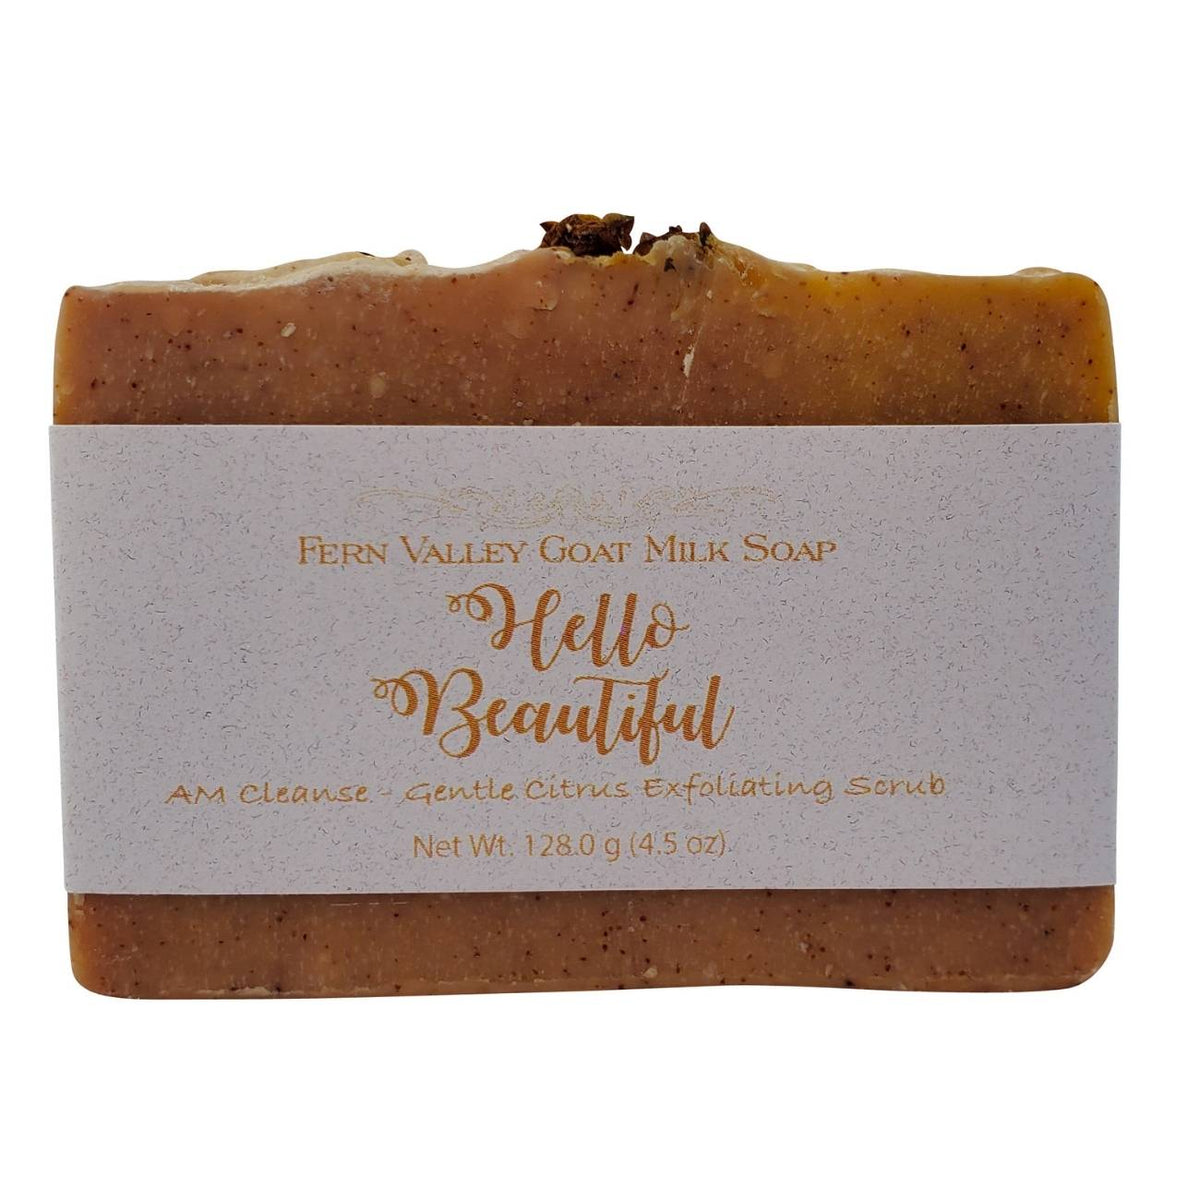 Hello Beautiful AM Cleanse - Gentle Citrus Exfoliating Scrub